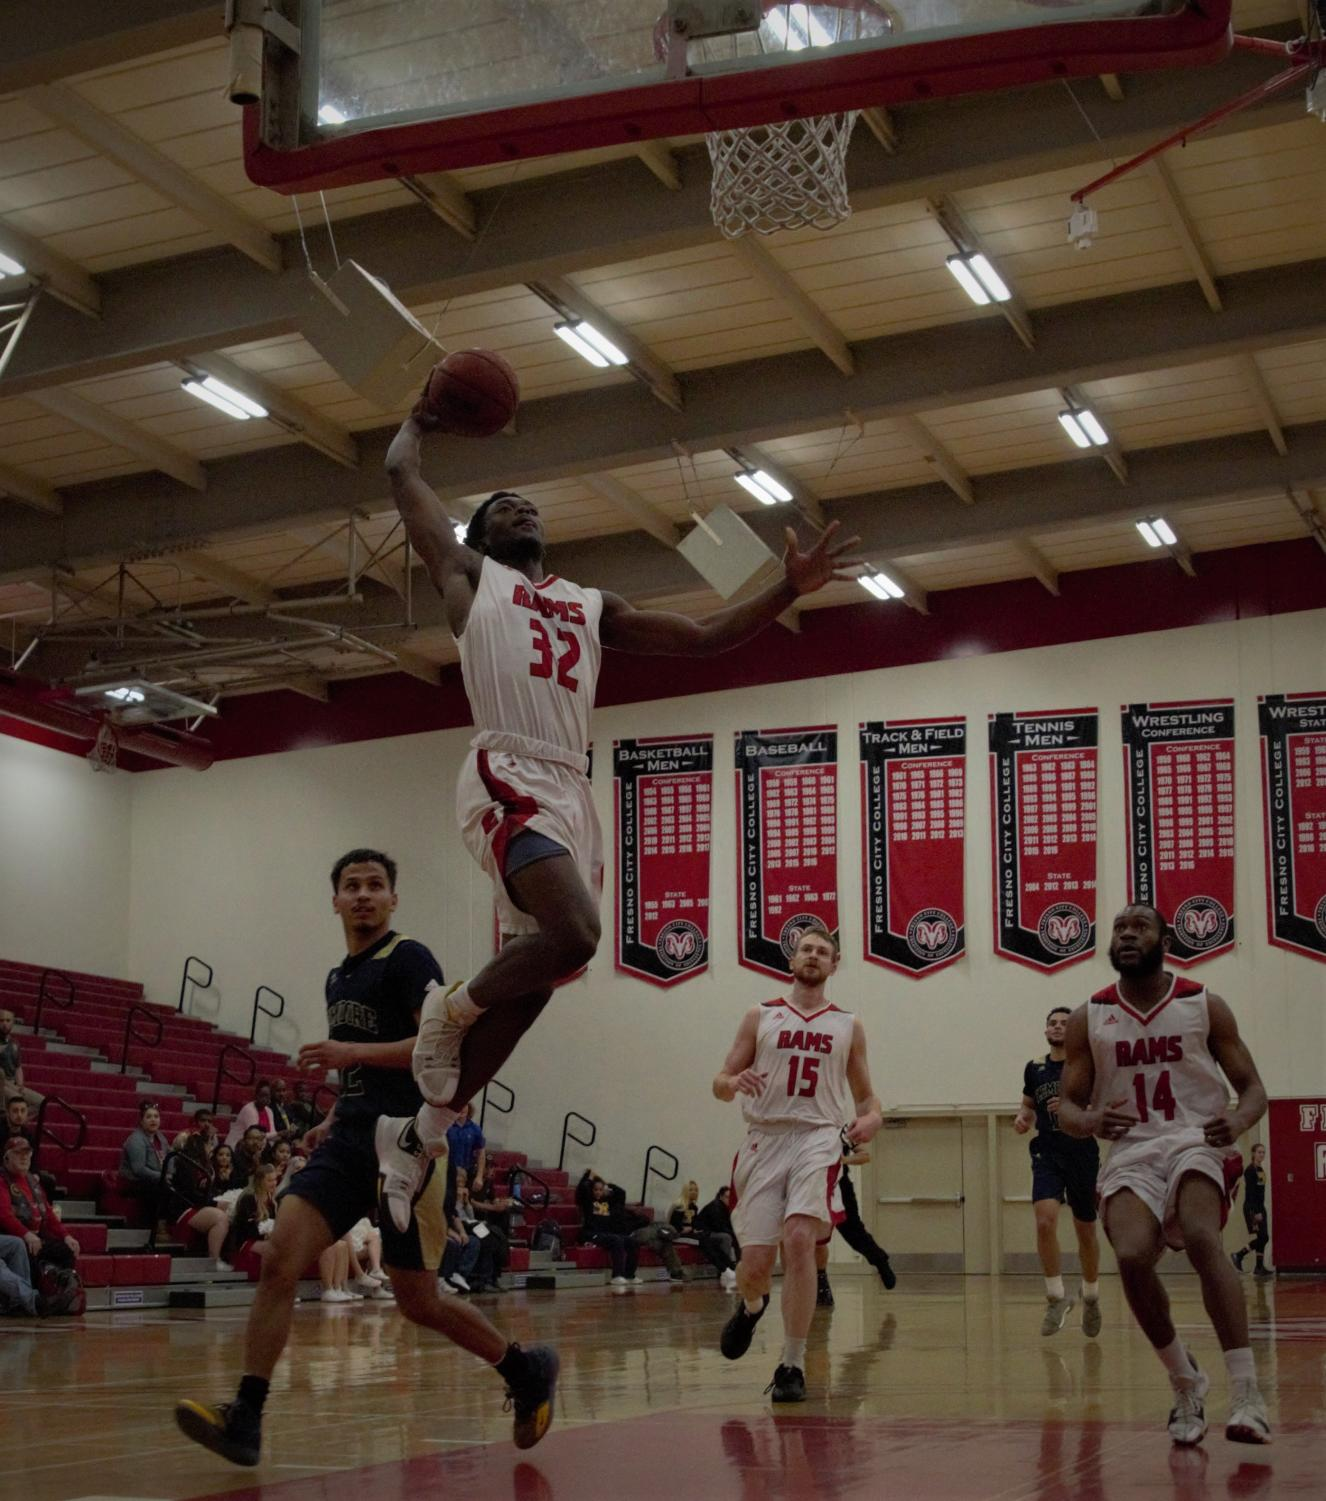 Freshman guard/forward Ronald Agebsar takes to the sky on his way to a dunk in the Rams' dominating 151-56 win over West Hills Lemoore on Jan. 30, 2019. Photo by Ben Hensley